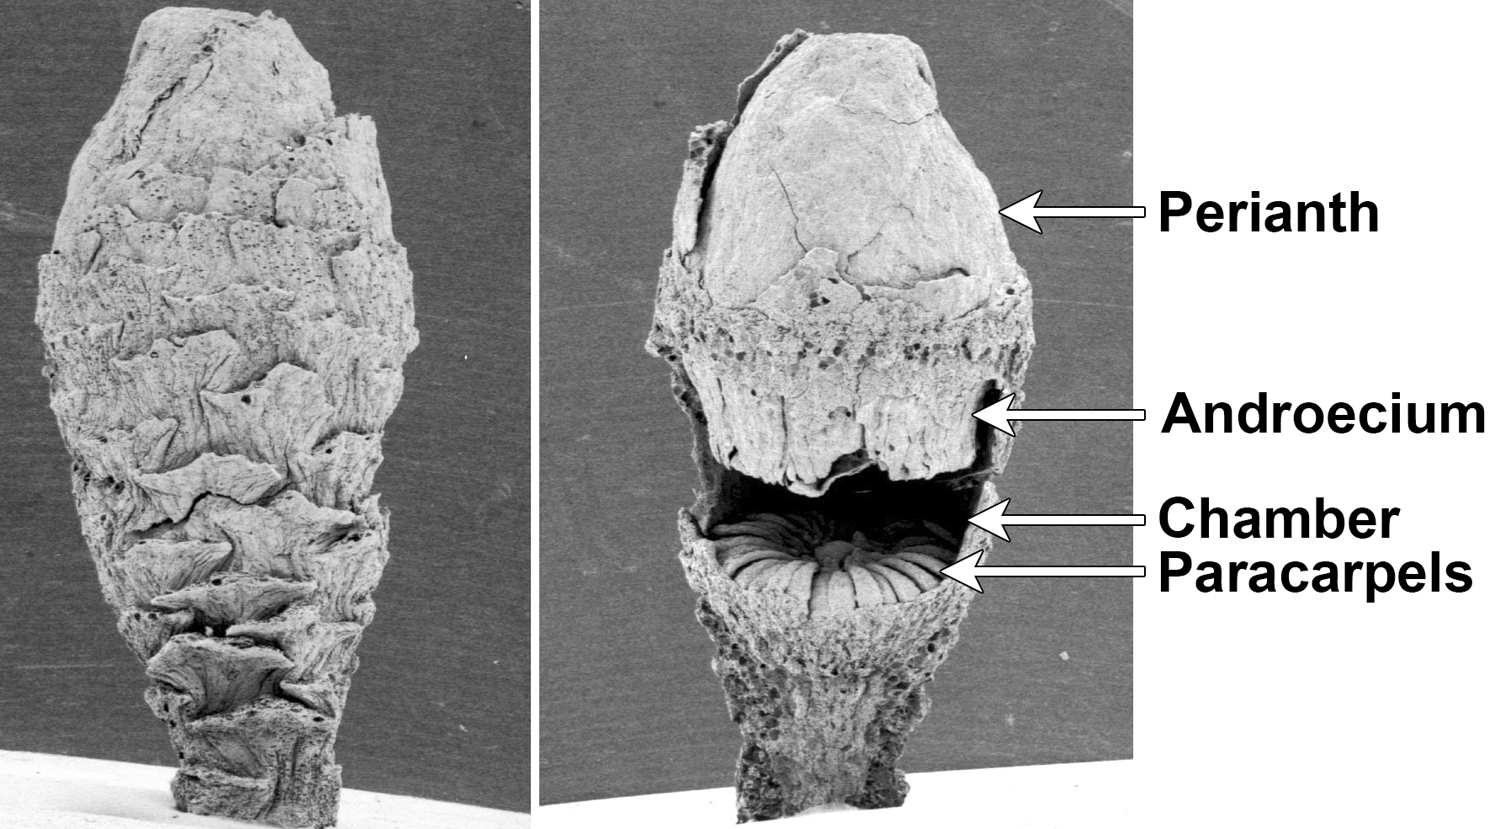 2-Panel figure. Panel 1. Bud of fossil Microvictoria flower. Panel 2. Same bud, partially dissected.